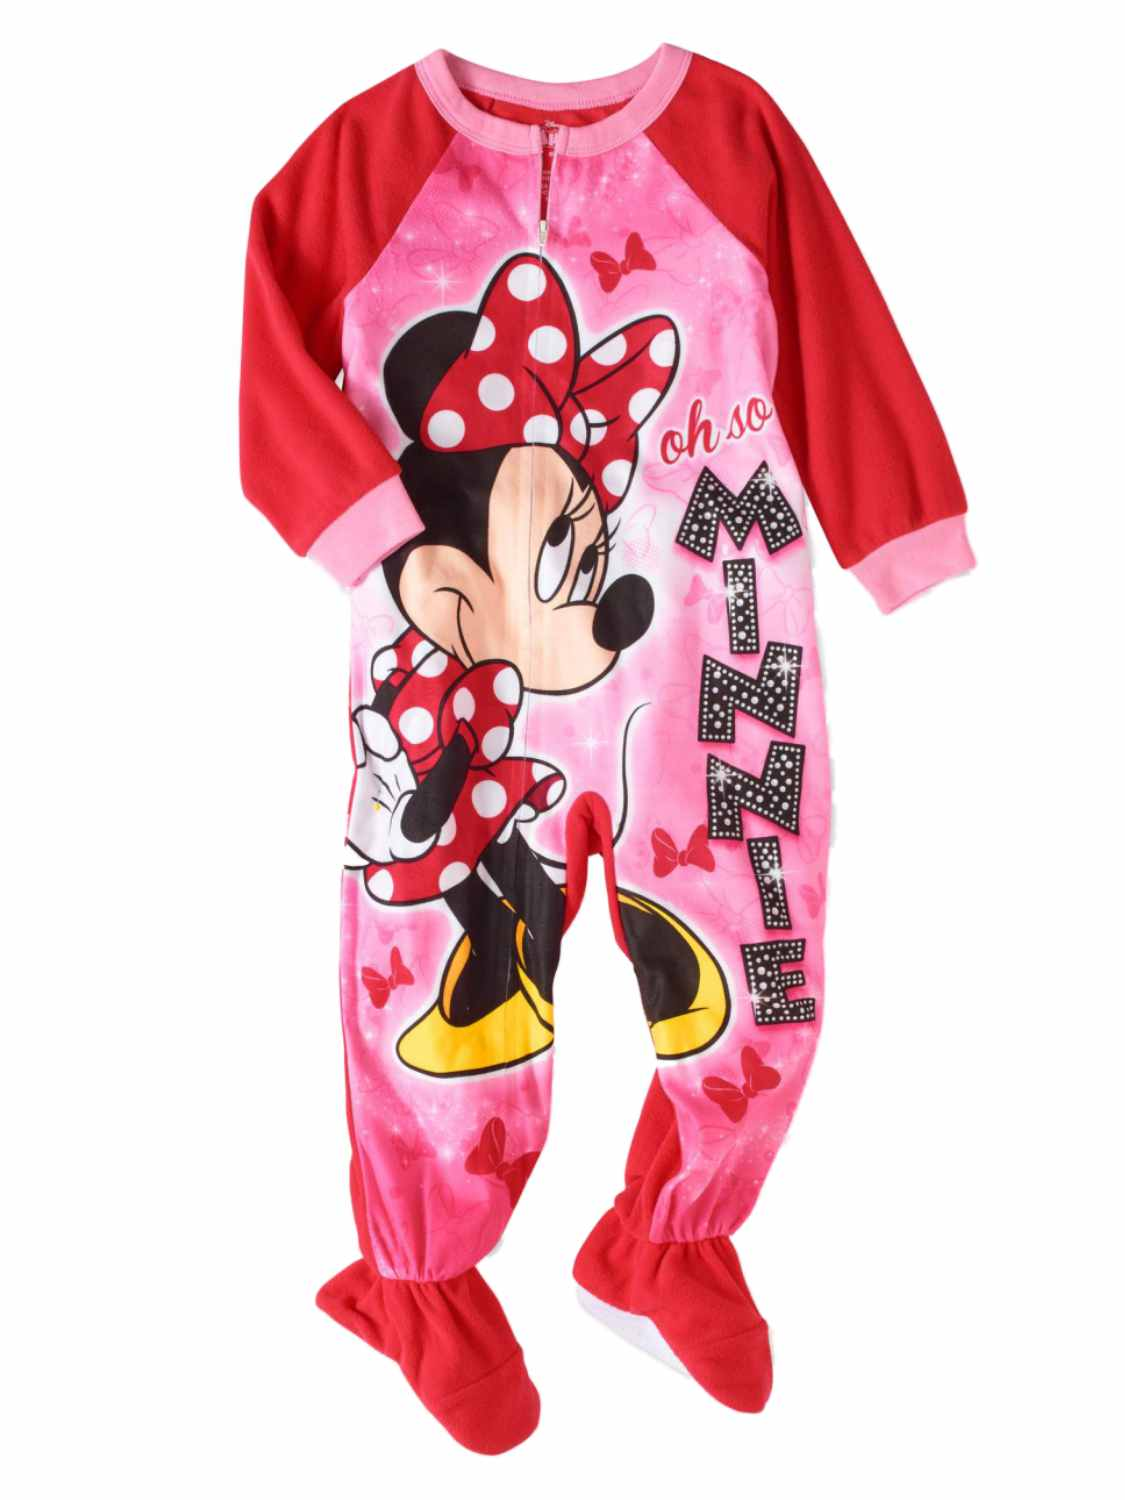 Disney Toddler Girls Pink Fleece Minnie Mouse Blanket Sleeper Footie Pajamas